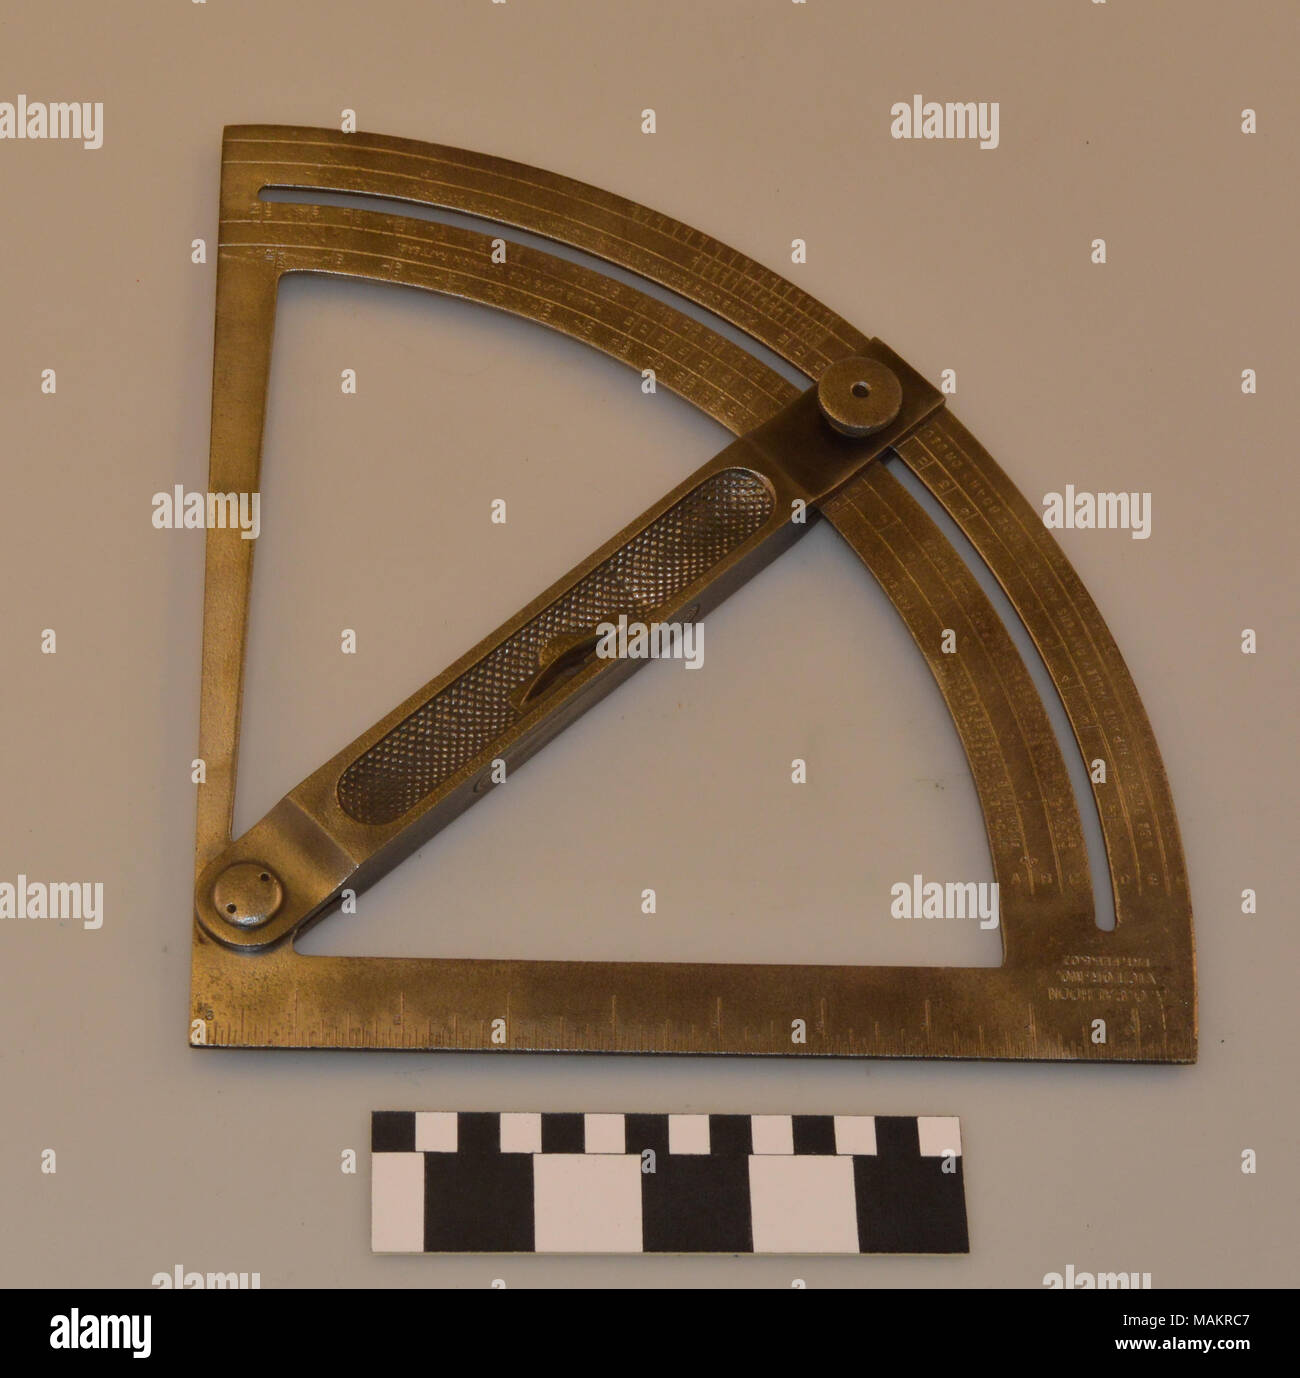 Rafter polygon bevel gauge patented by A. O. Calhoon in Victor, Missouri. Title: A.O. Calhoon Rafter and Polygon Bevel Gauge  . between 1907 and 1920. Calhoon, Albert Odell, 1852-1921 - Stock Image